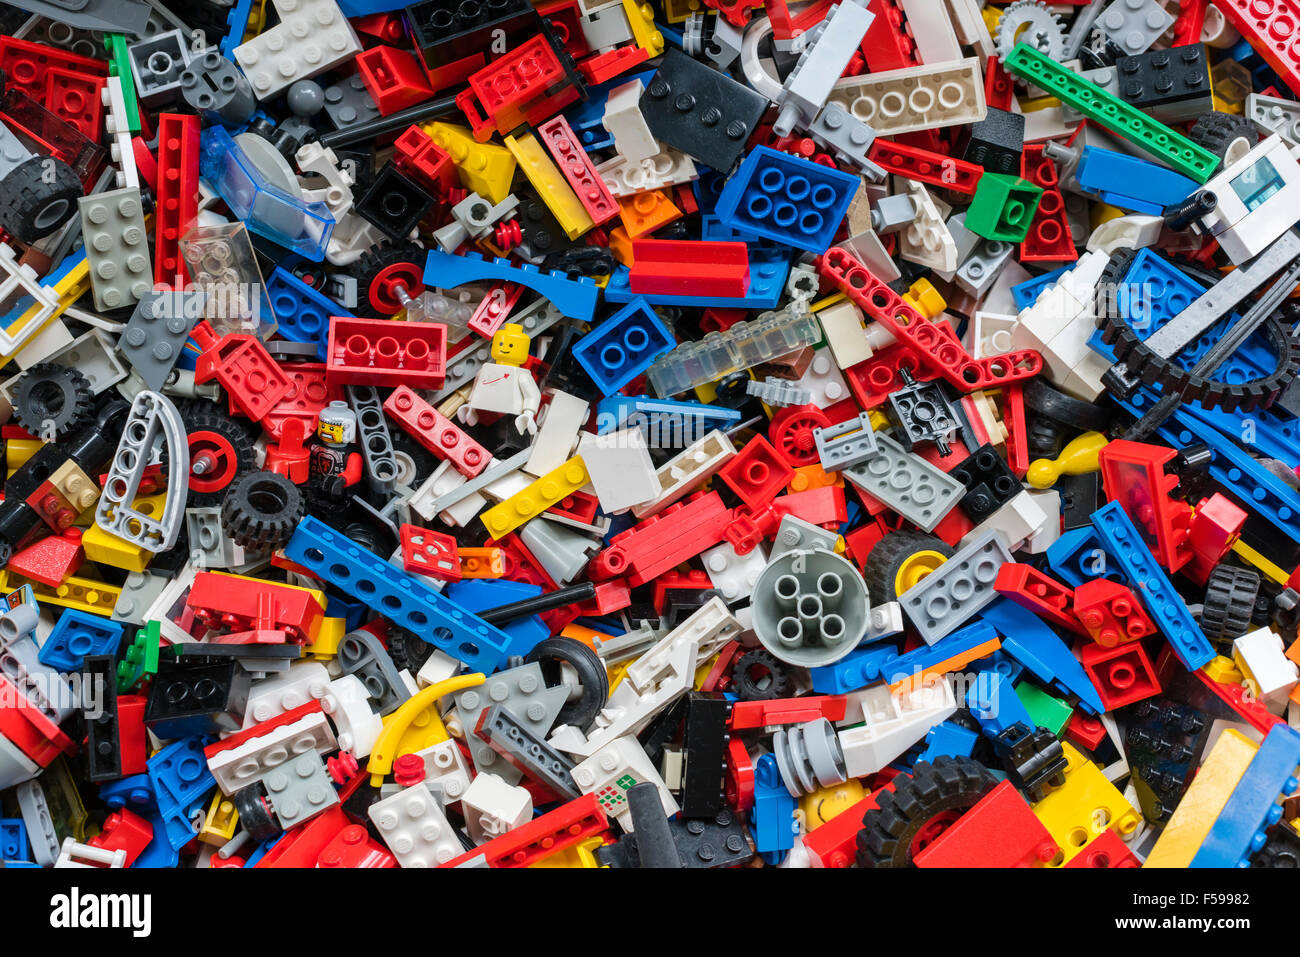 Legos For Free View From Above Into A Box Full Of Mixed Colourful Lego Bricks